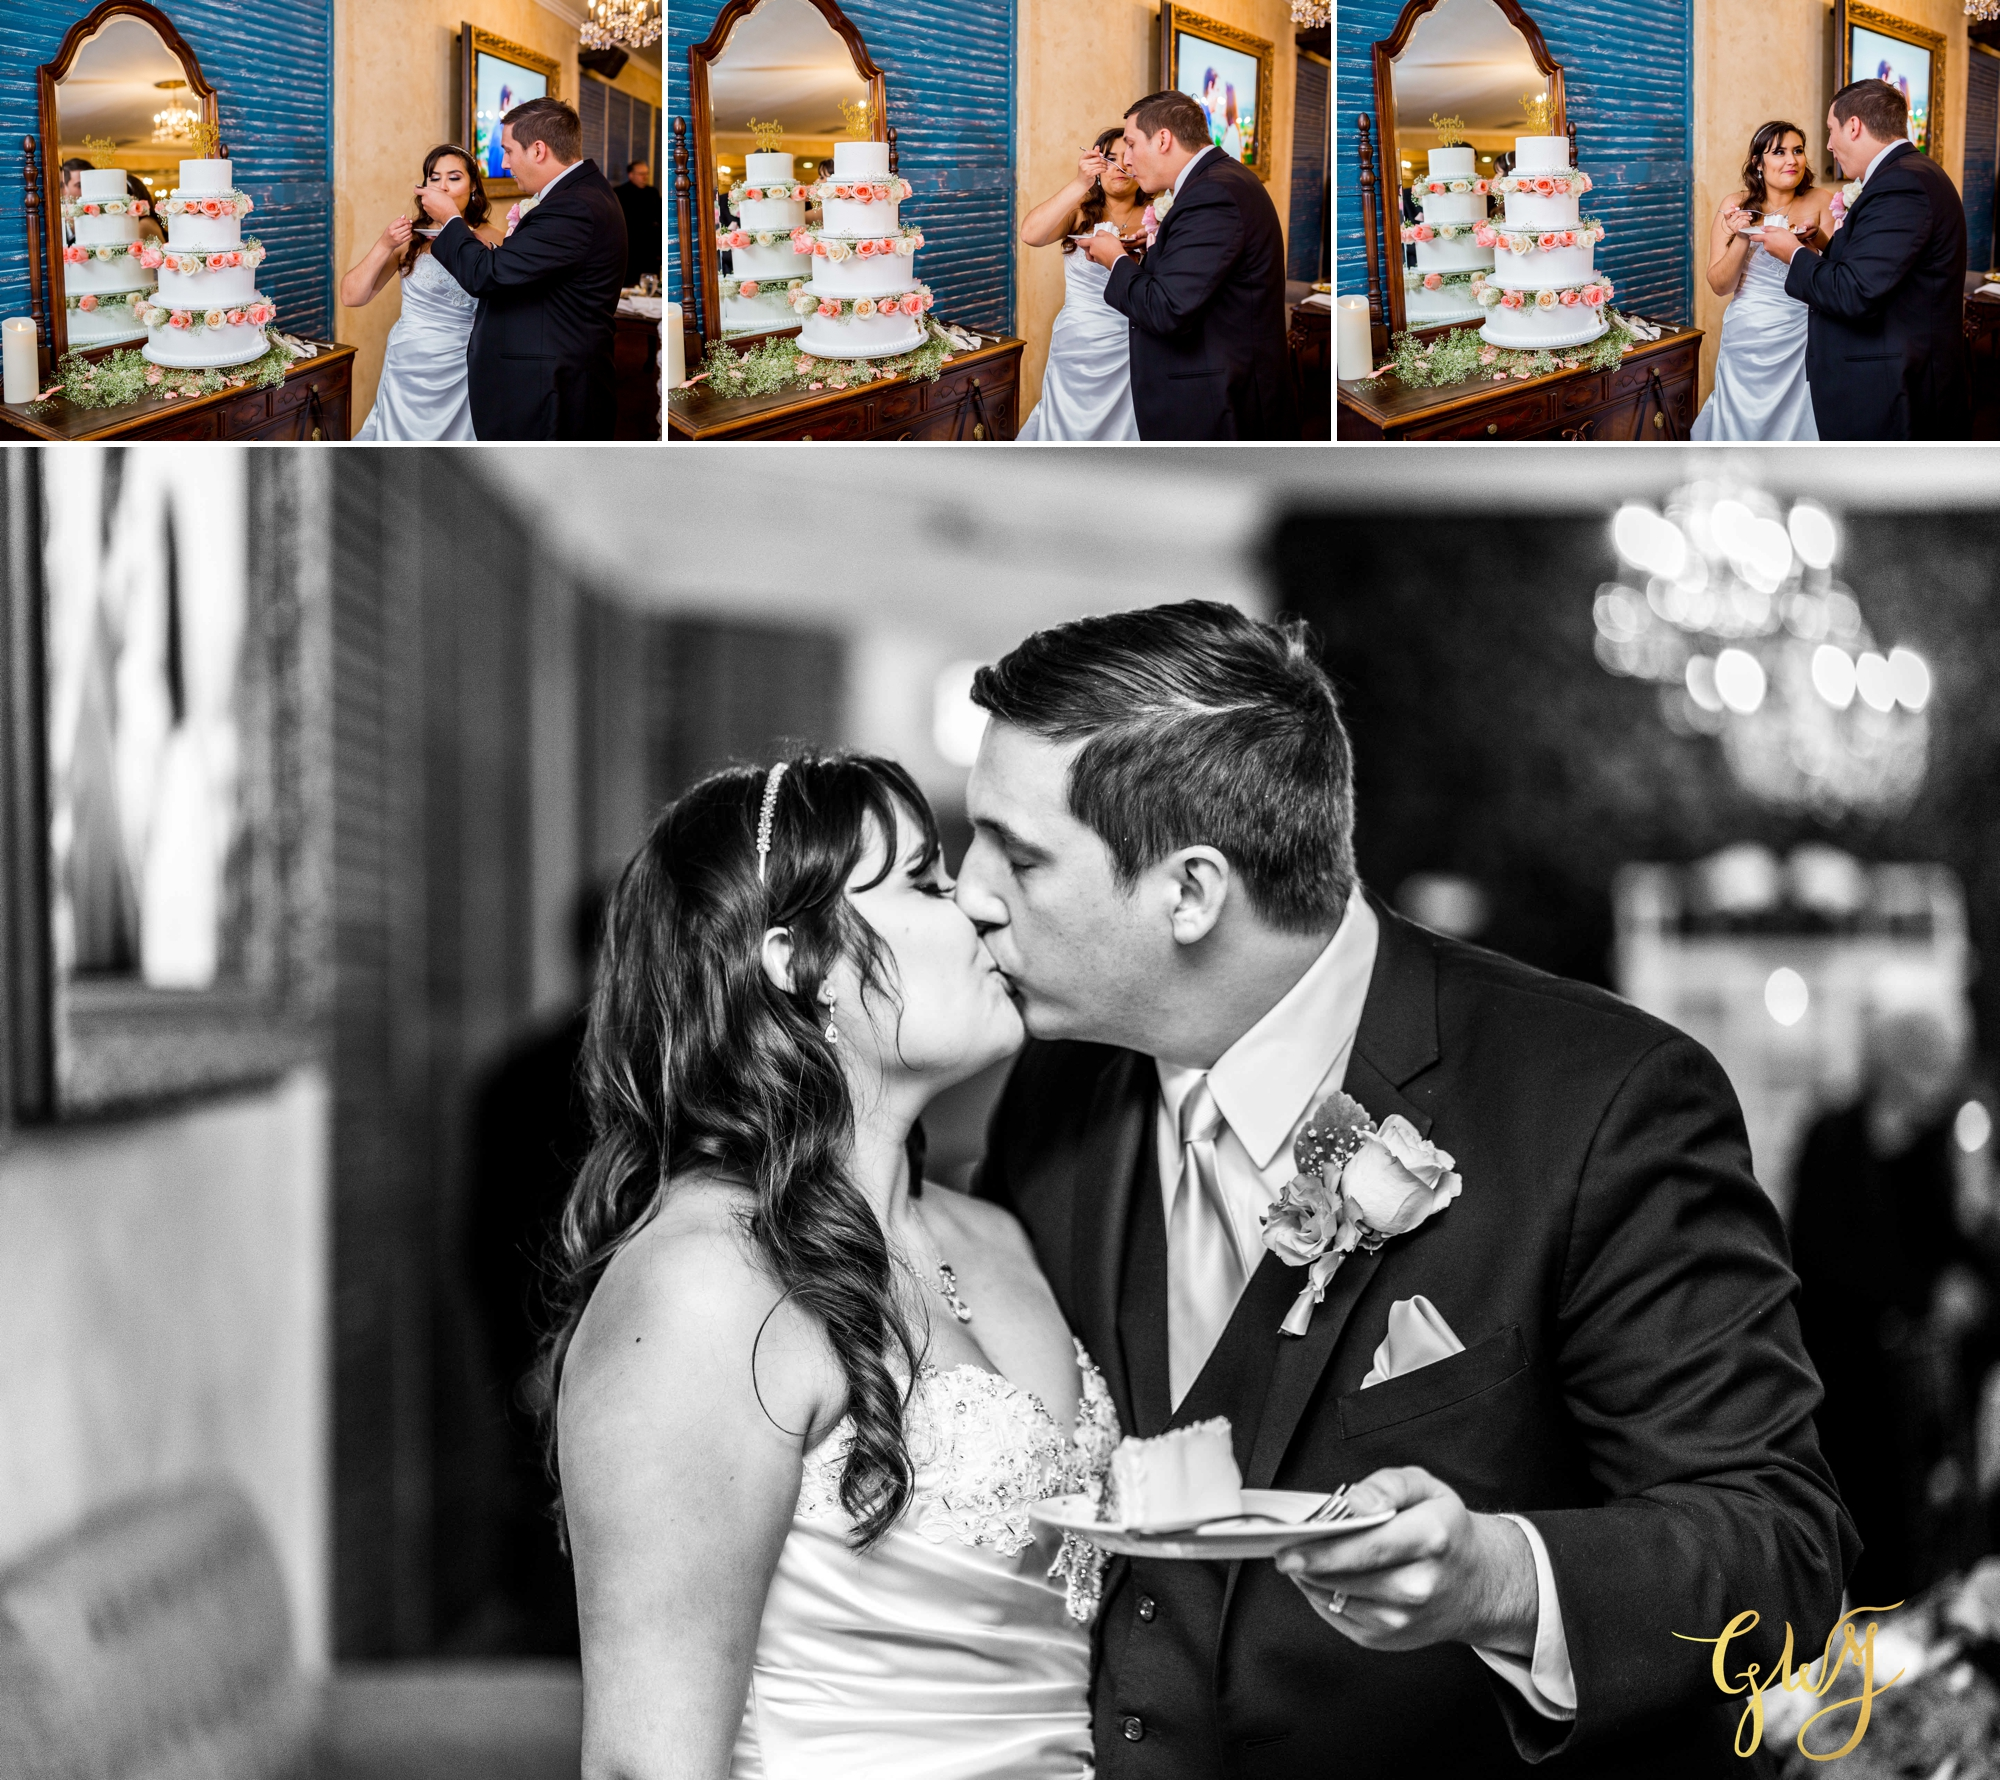 Josef + Sabrina's Vintage Rose Fairytale Spring Wedding by Glass Woods Media 46.jpg